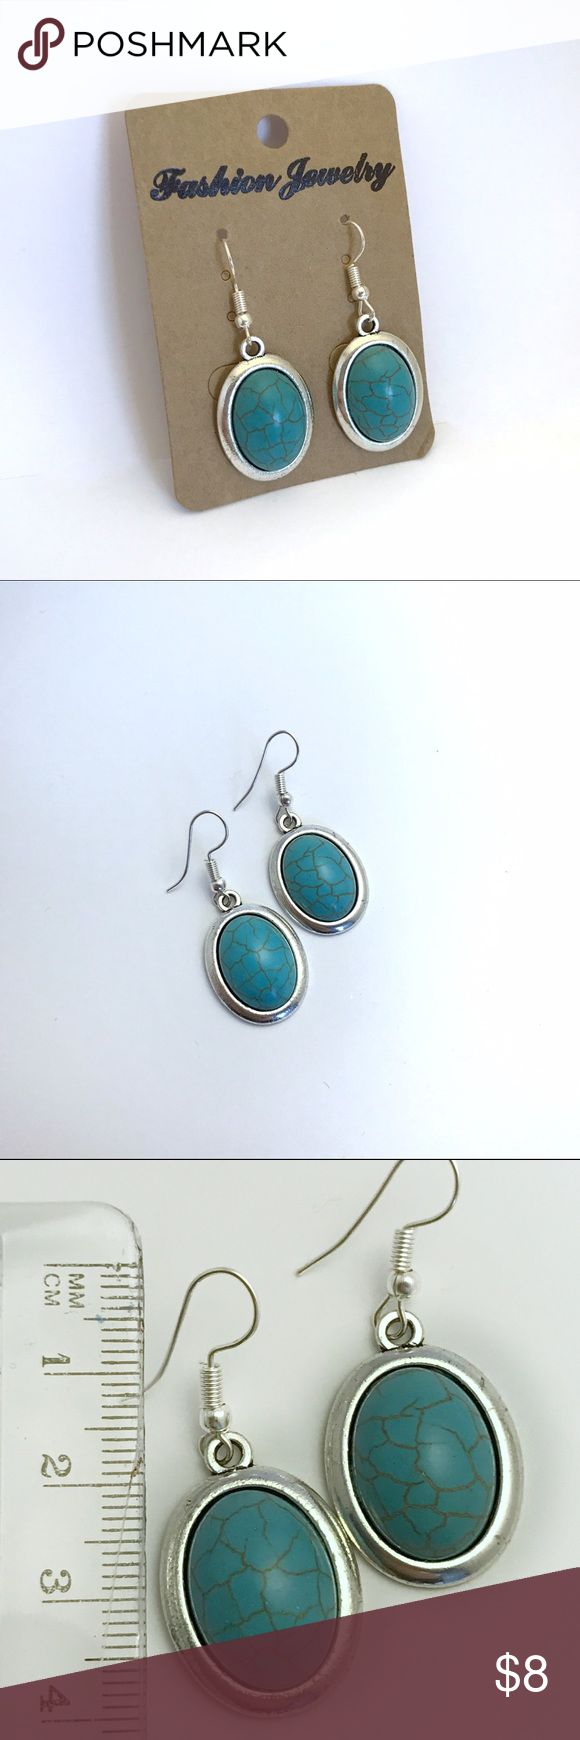 Silver & turquoise drop earrings Simple and chic style turquoise look, NWT boutique item! items come all safely packaged🎁 from my smoke 🚭free home Jewelry Earrings